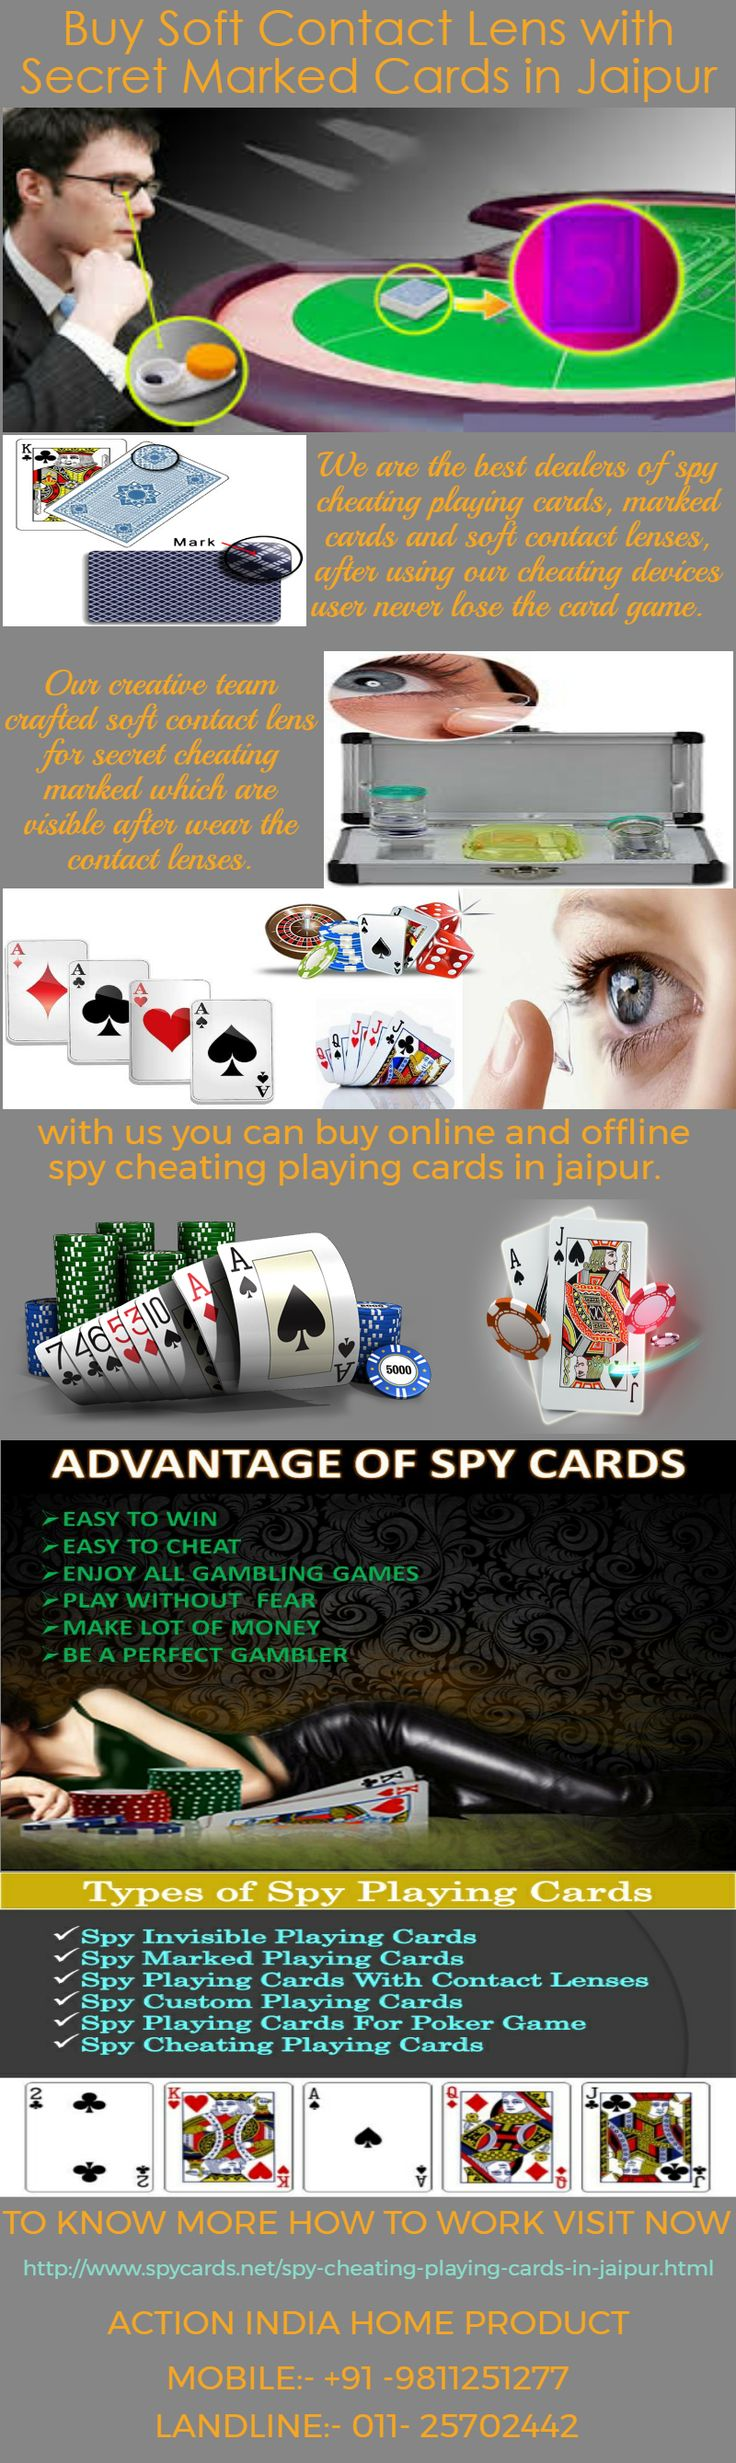 Spy cheating playing cards is the best card for making the money, gambler used these  cards for winning the all card and poker games. These are specially customized for cheating with secret way. We offers these spy cards in Jaipur at low price to know more that how to play with these hen visit our official website:- http://www.spycards.net/spy-cheating-playing-cards-in-jaipur.html